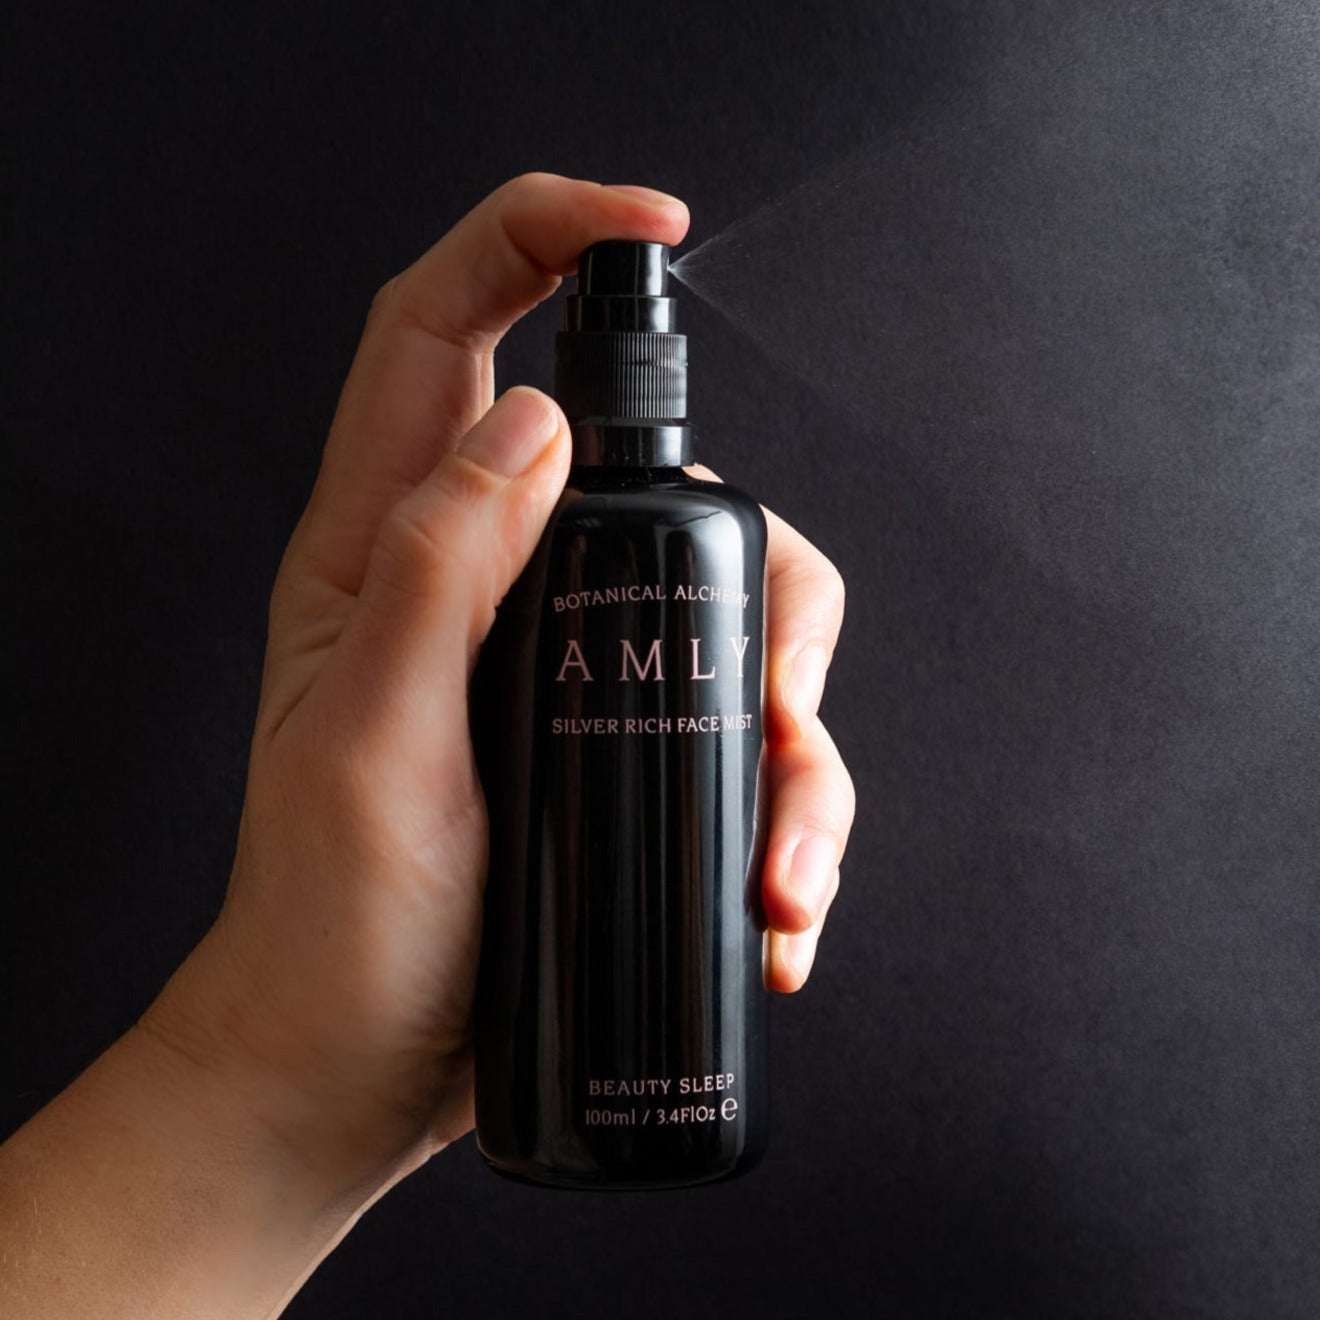 Amly Radiance Boost Facial Mist